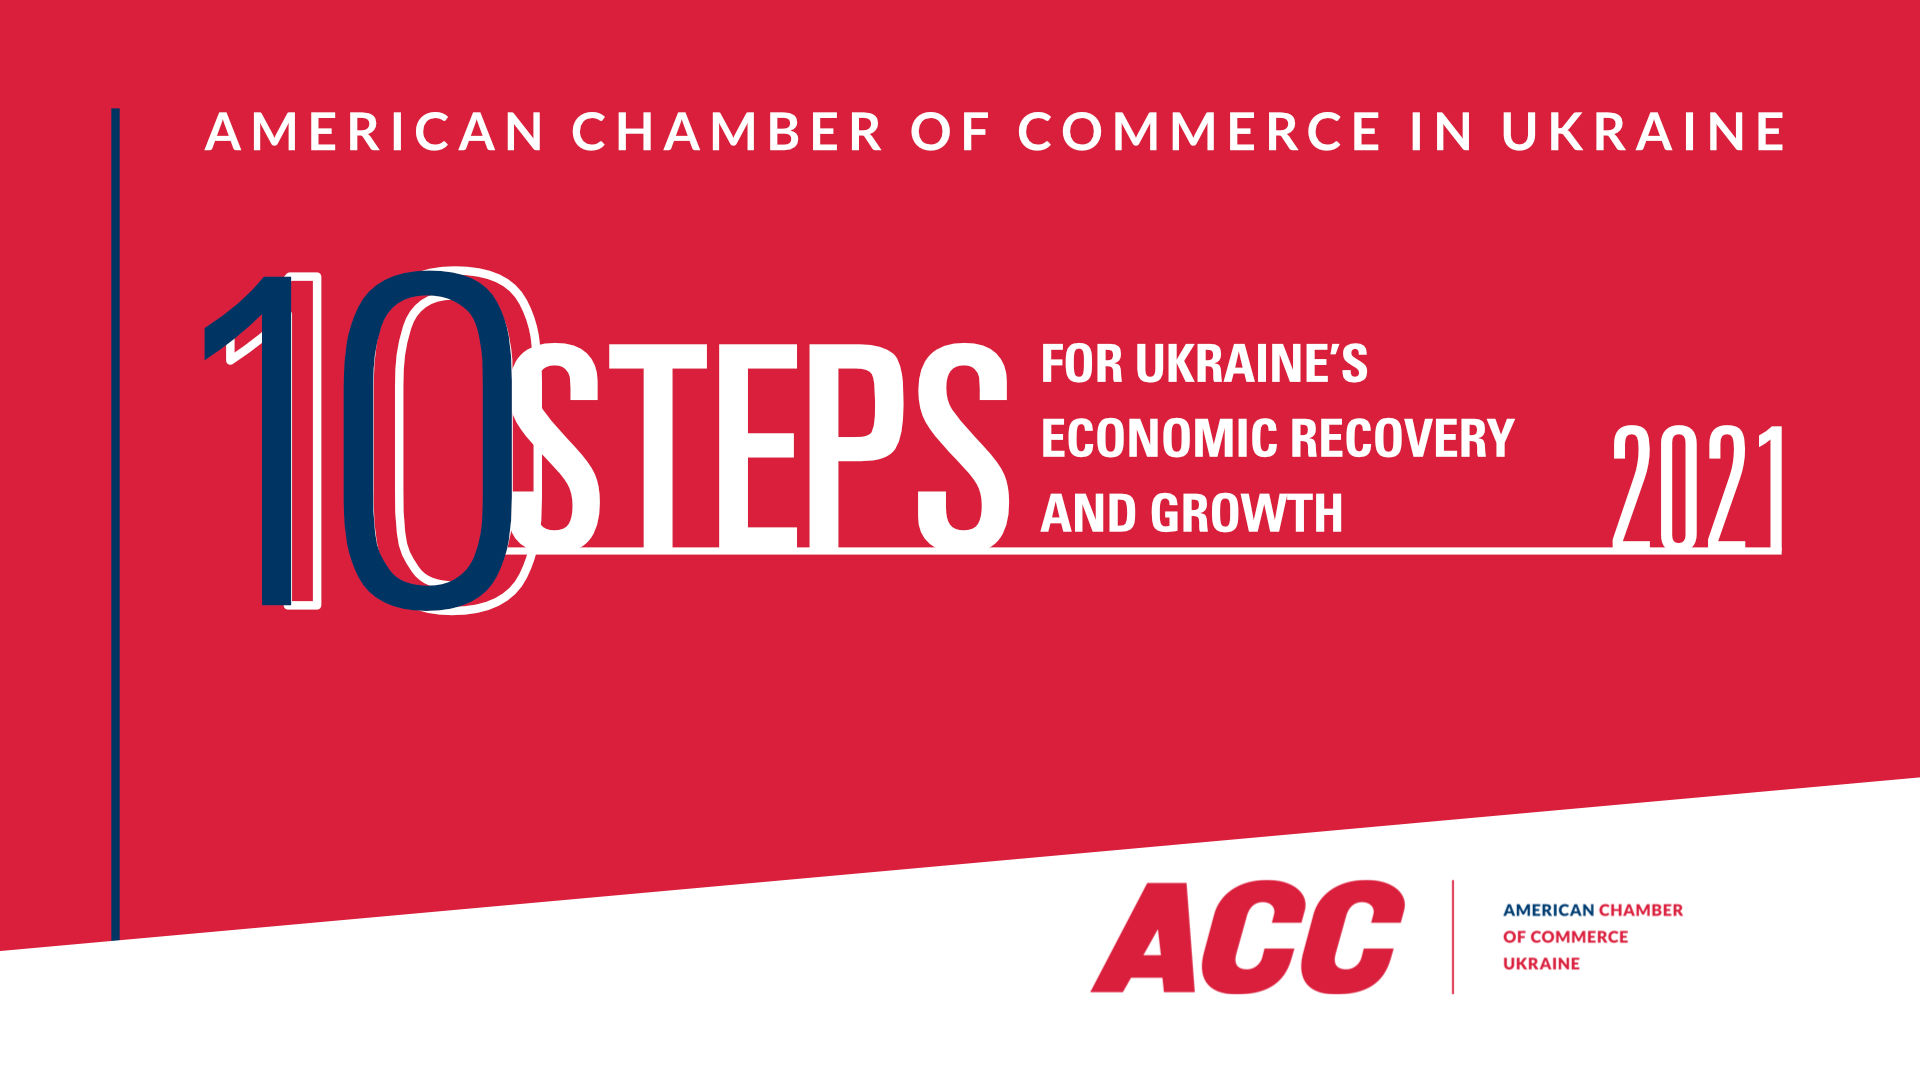 10 Steps for Ukraine's Economic Recovery and Growth 2021